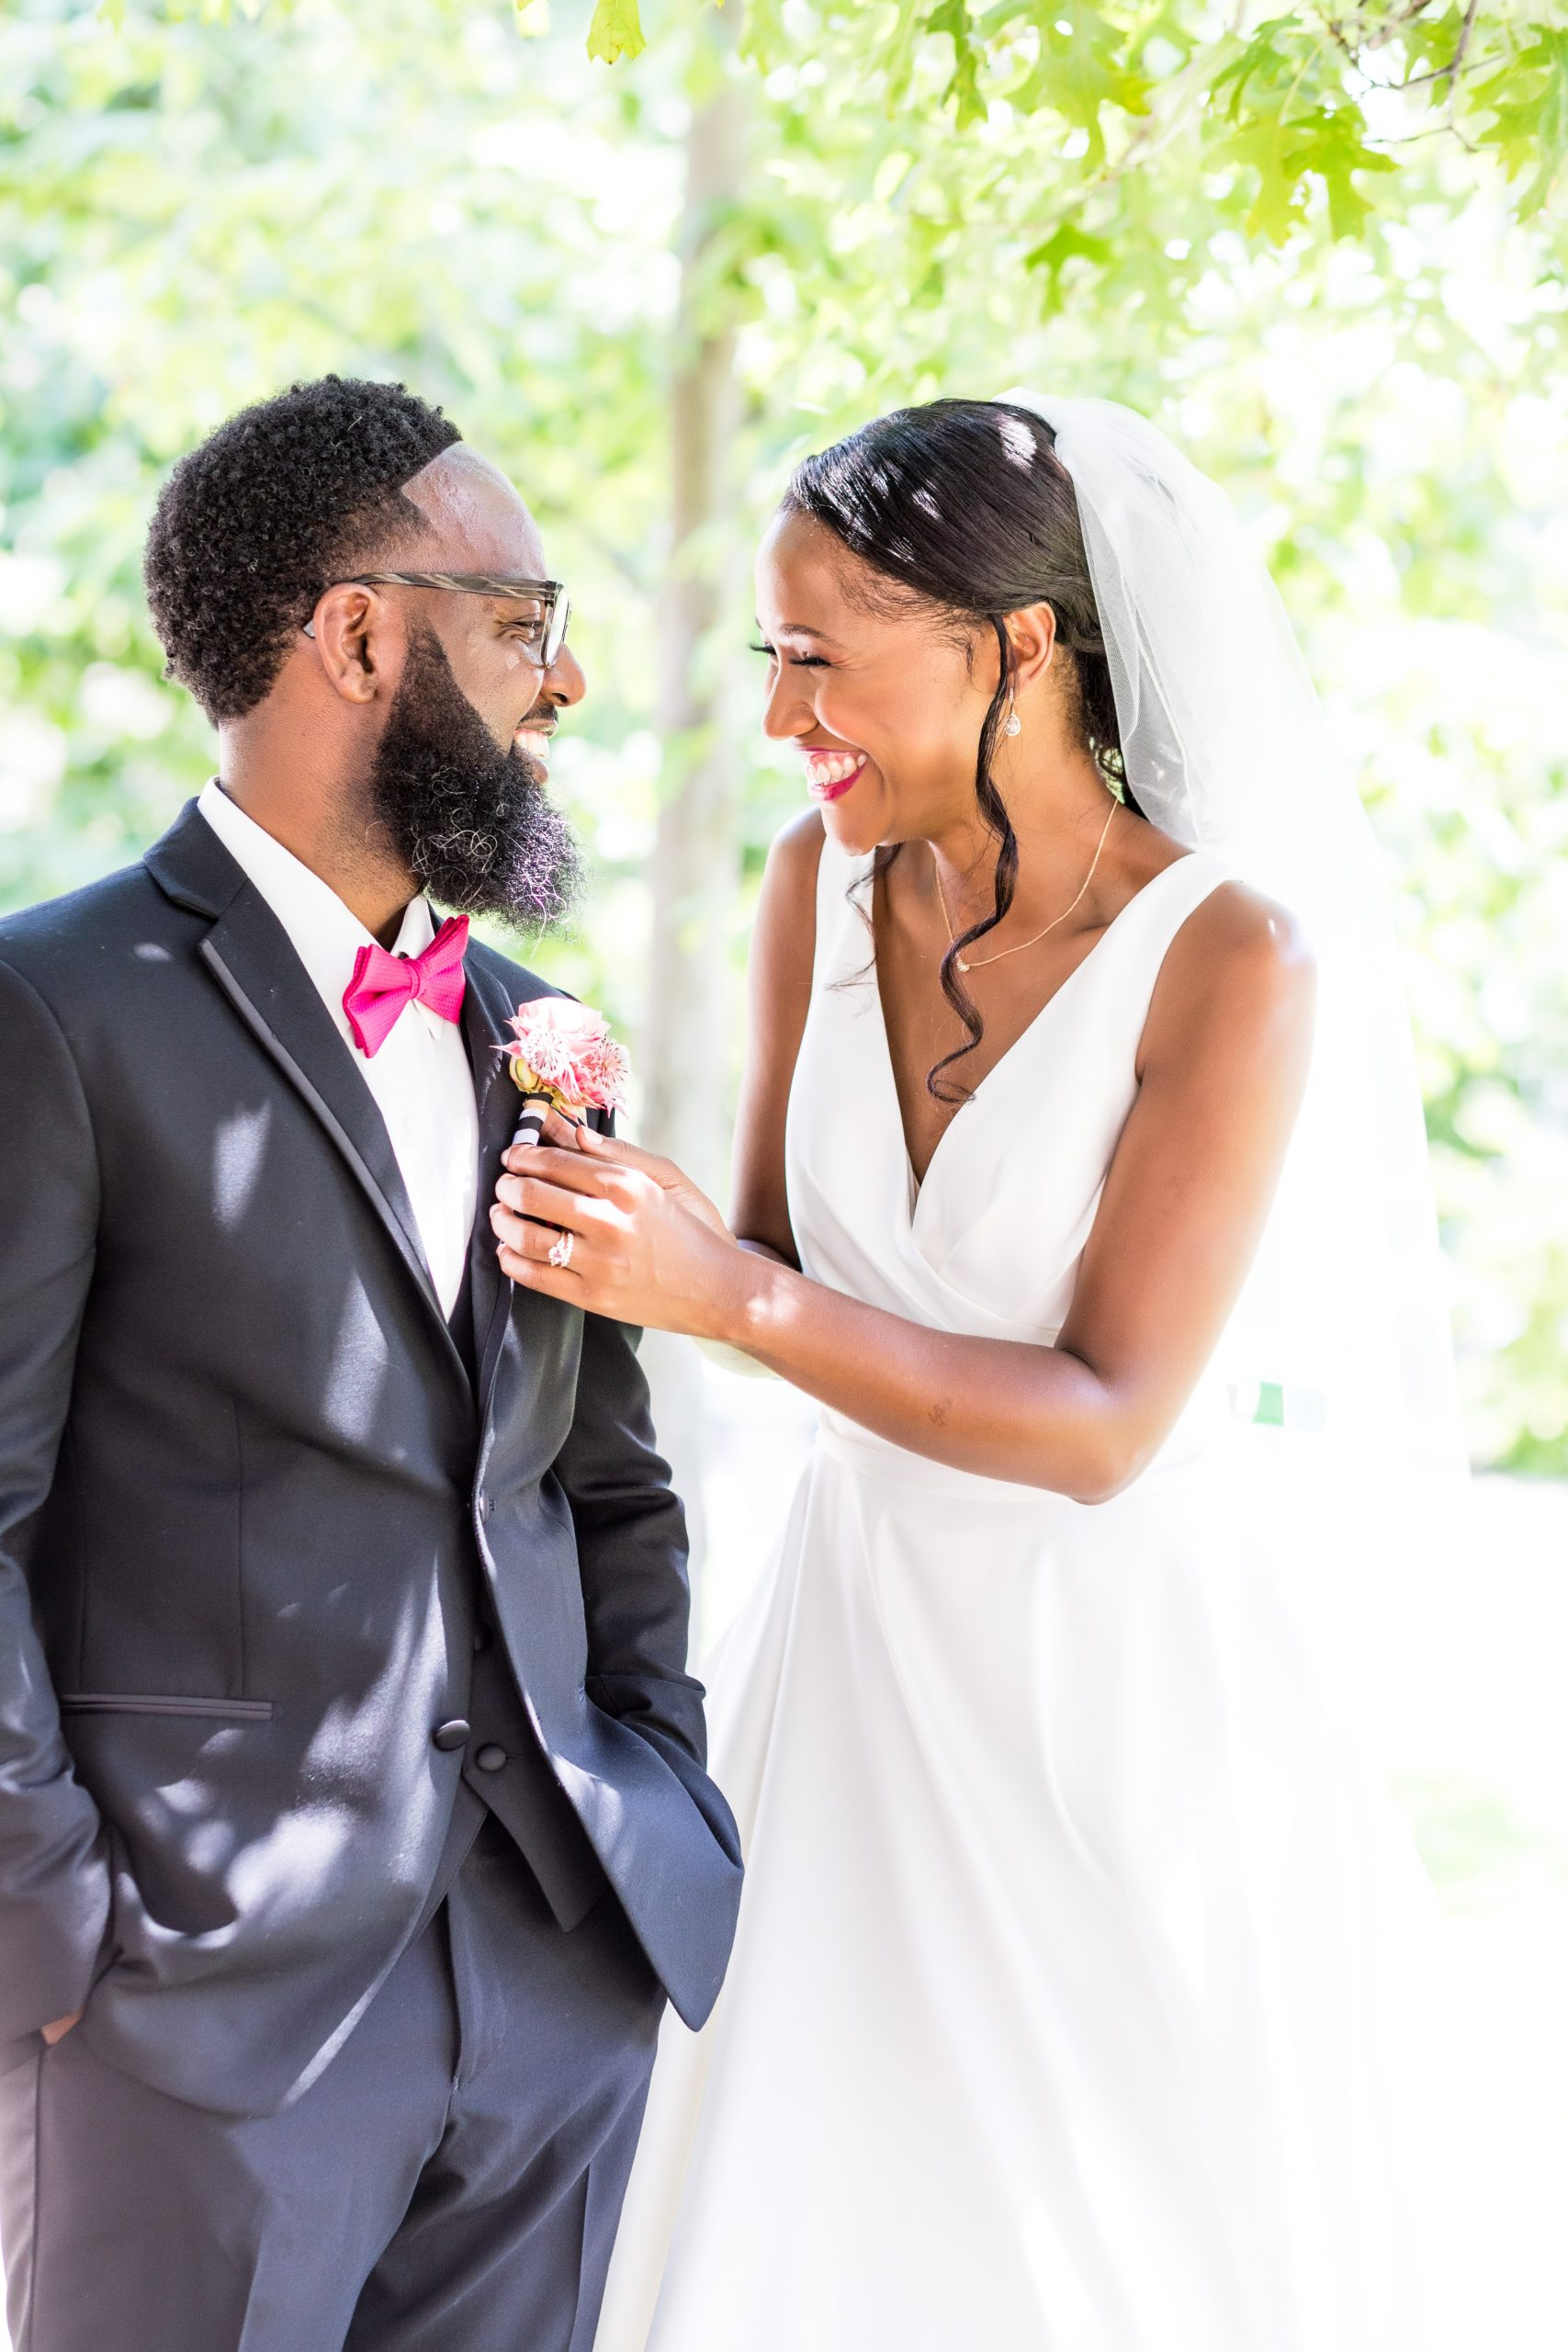 Love and laughter at the Michener Museum styled urban contemporary shoot for Ashley Gerrity Photography this past Summer. Featured on Dream Weddings.